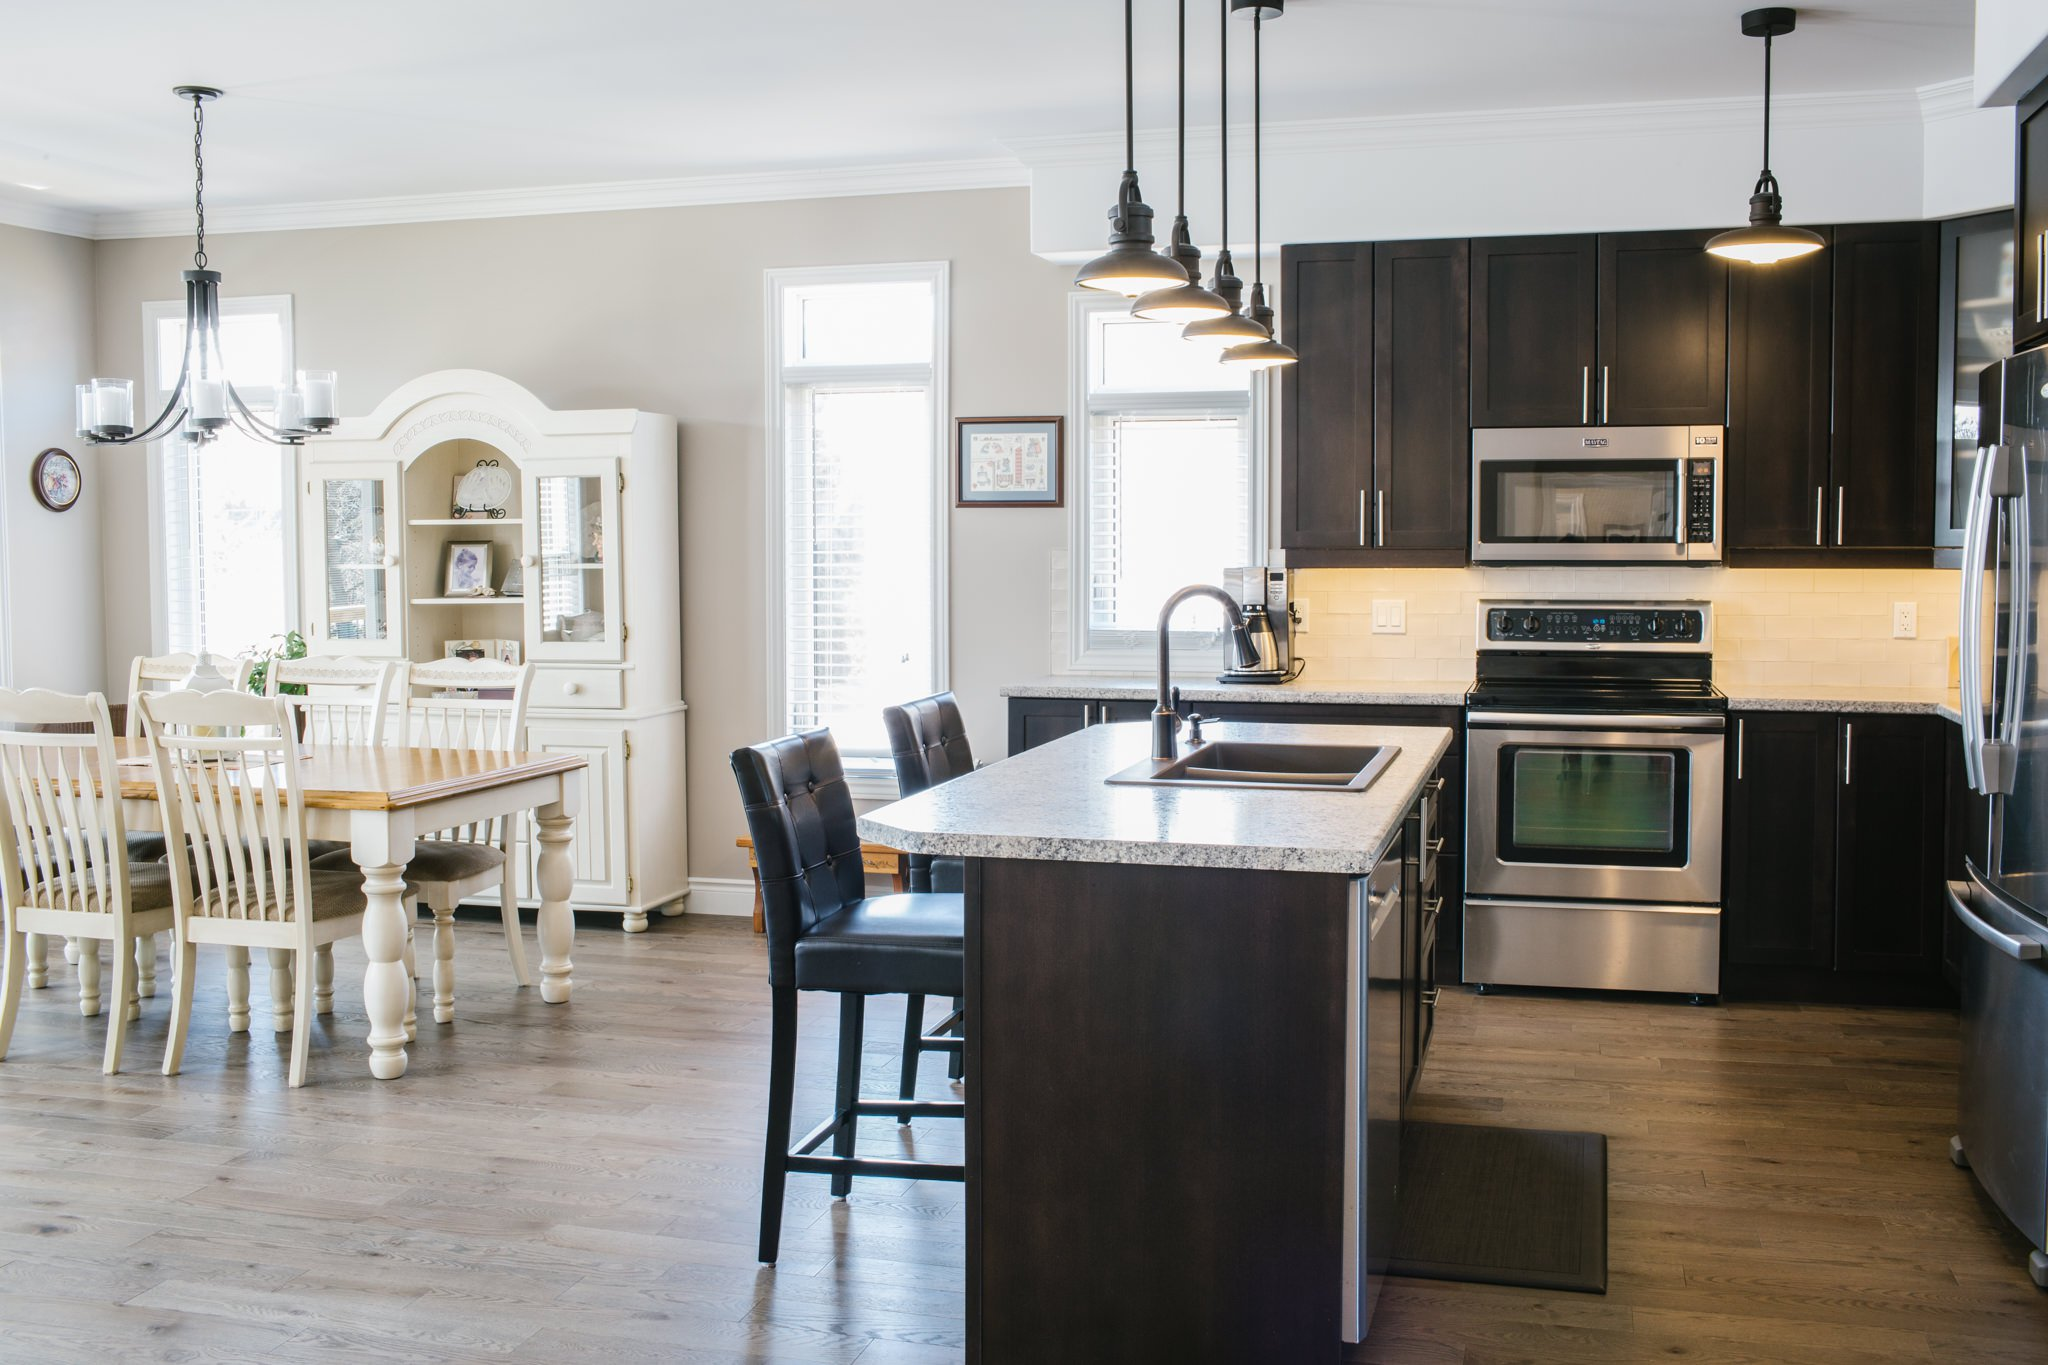 Photo 14: Photos: 70 Shewman Road in Brighton: Residential Detached for sale : MLS®# 184430